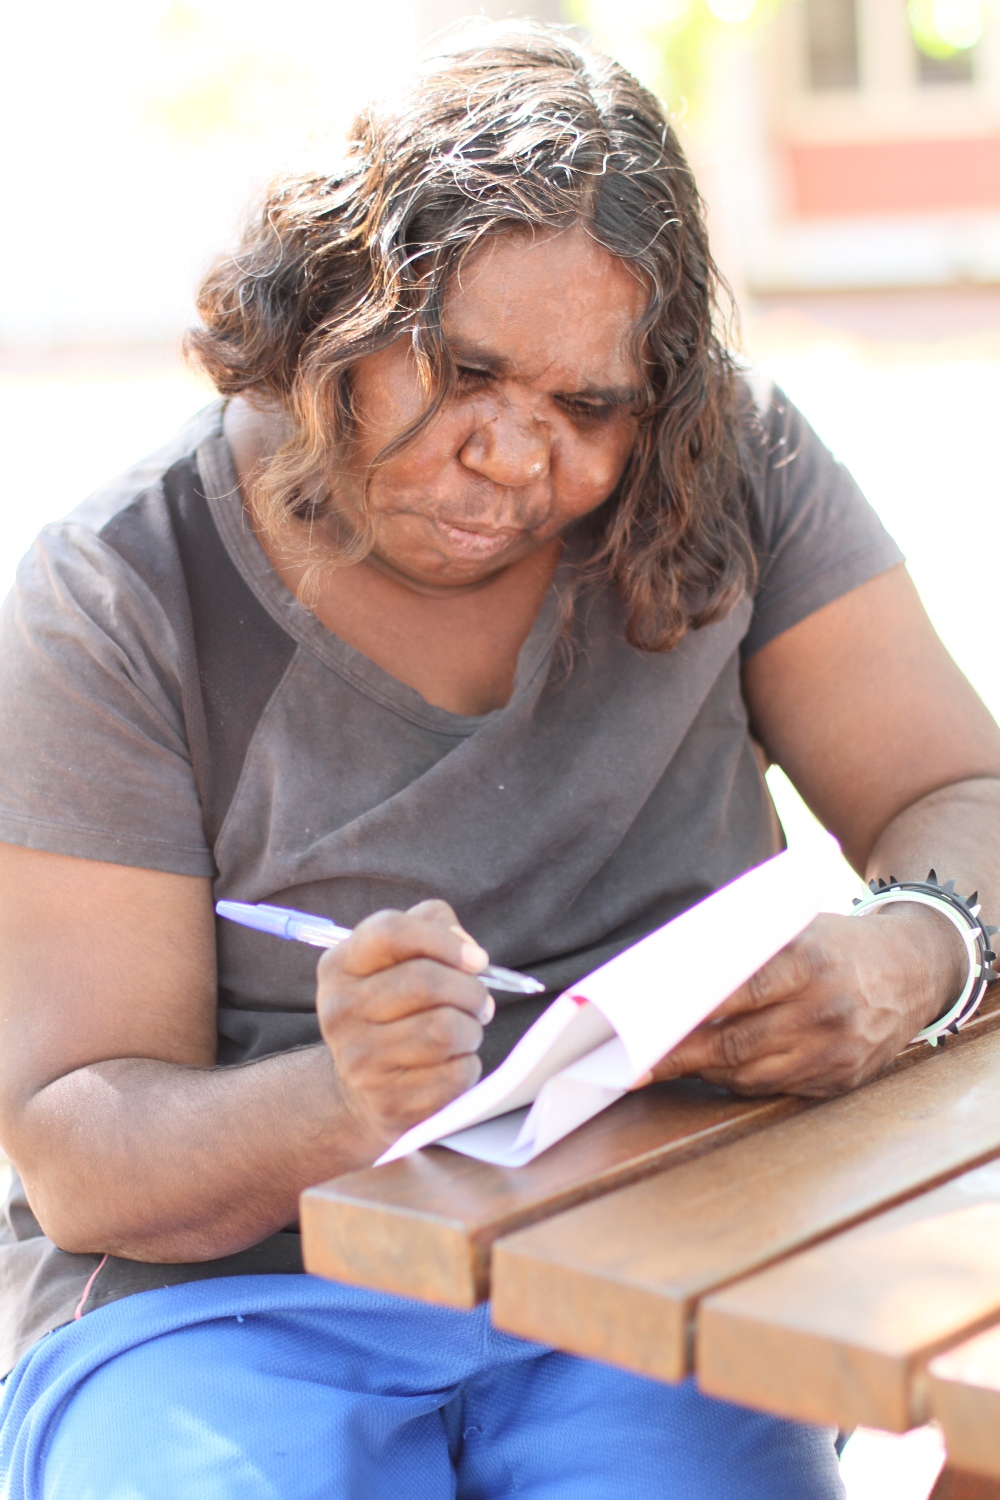 Lilly Spinks composing the voiceover to her video during the 2015 Visual Arts Leadership Program workshop in Broome © AGWA